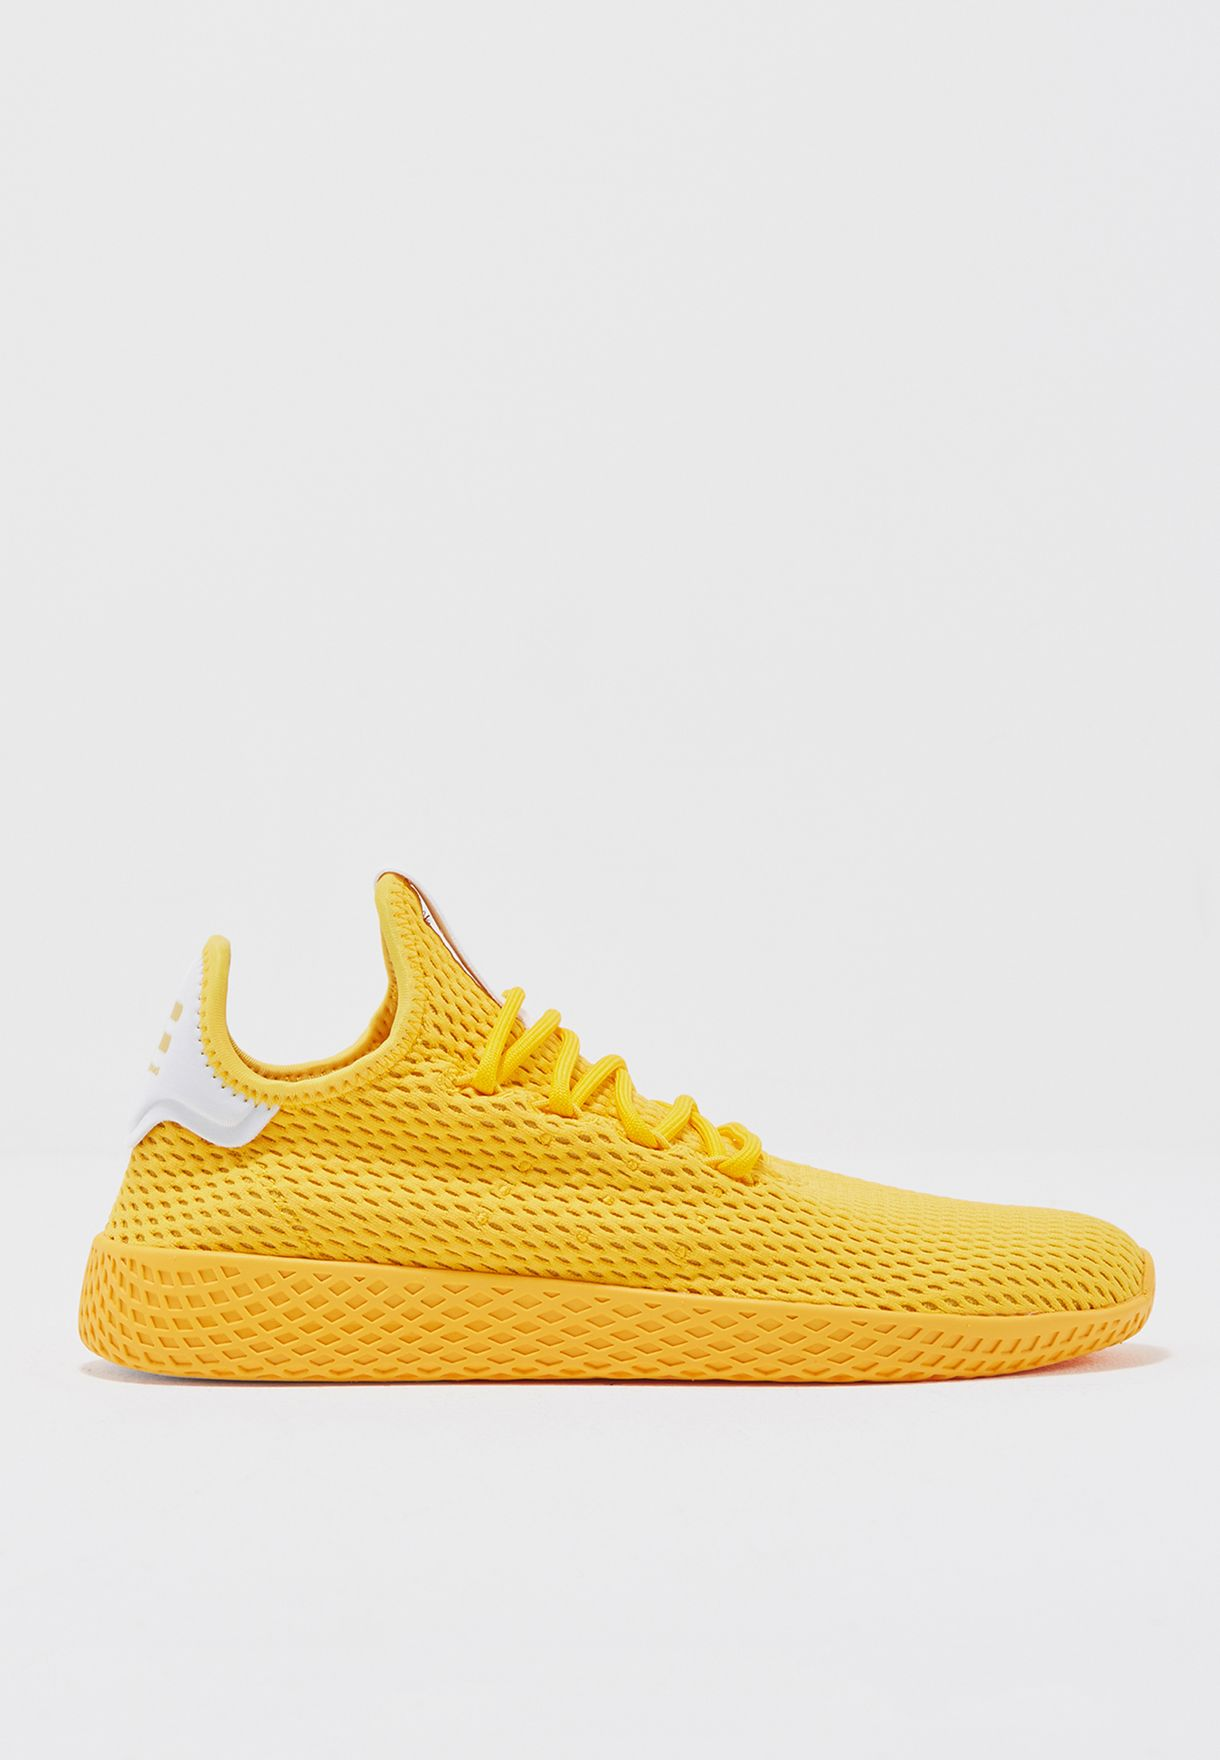 reputable site 2e7b1 24719 Shop adidas Originals yellow PW Tennis HU CP9767 for Women in UAE ...